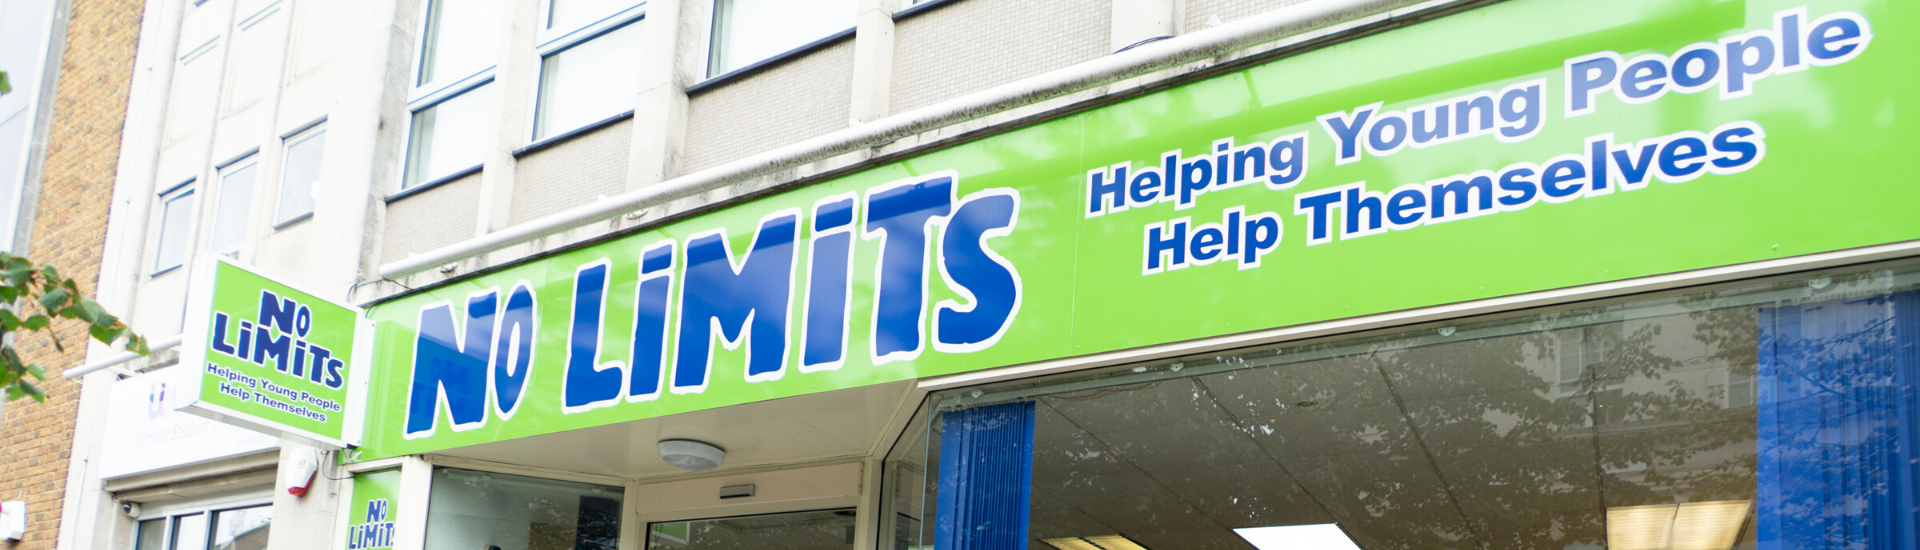 No Limits Advice Centre